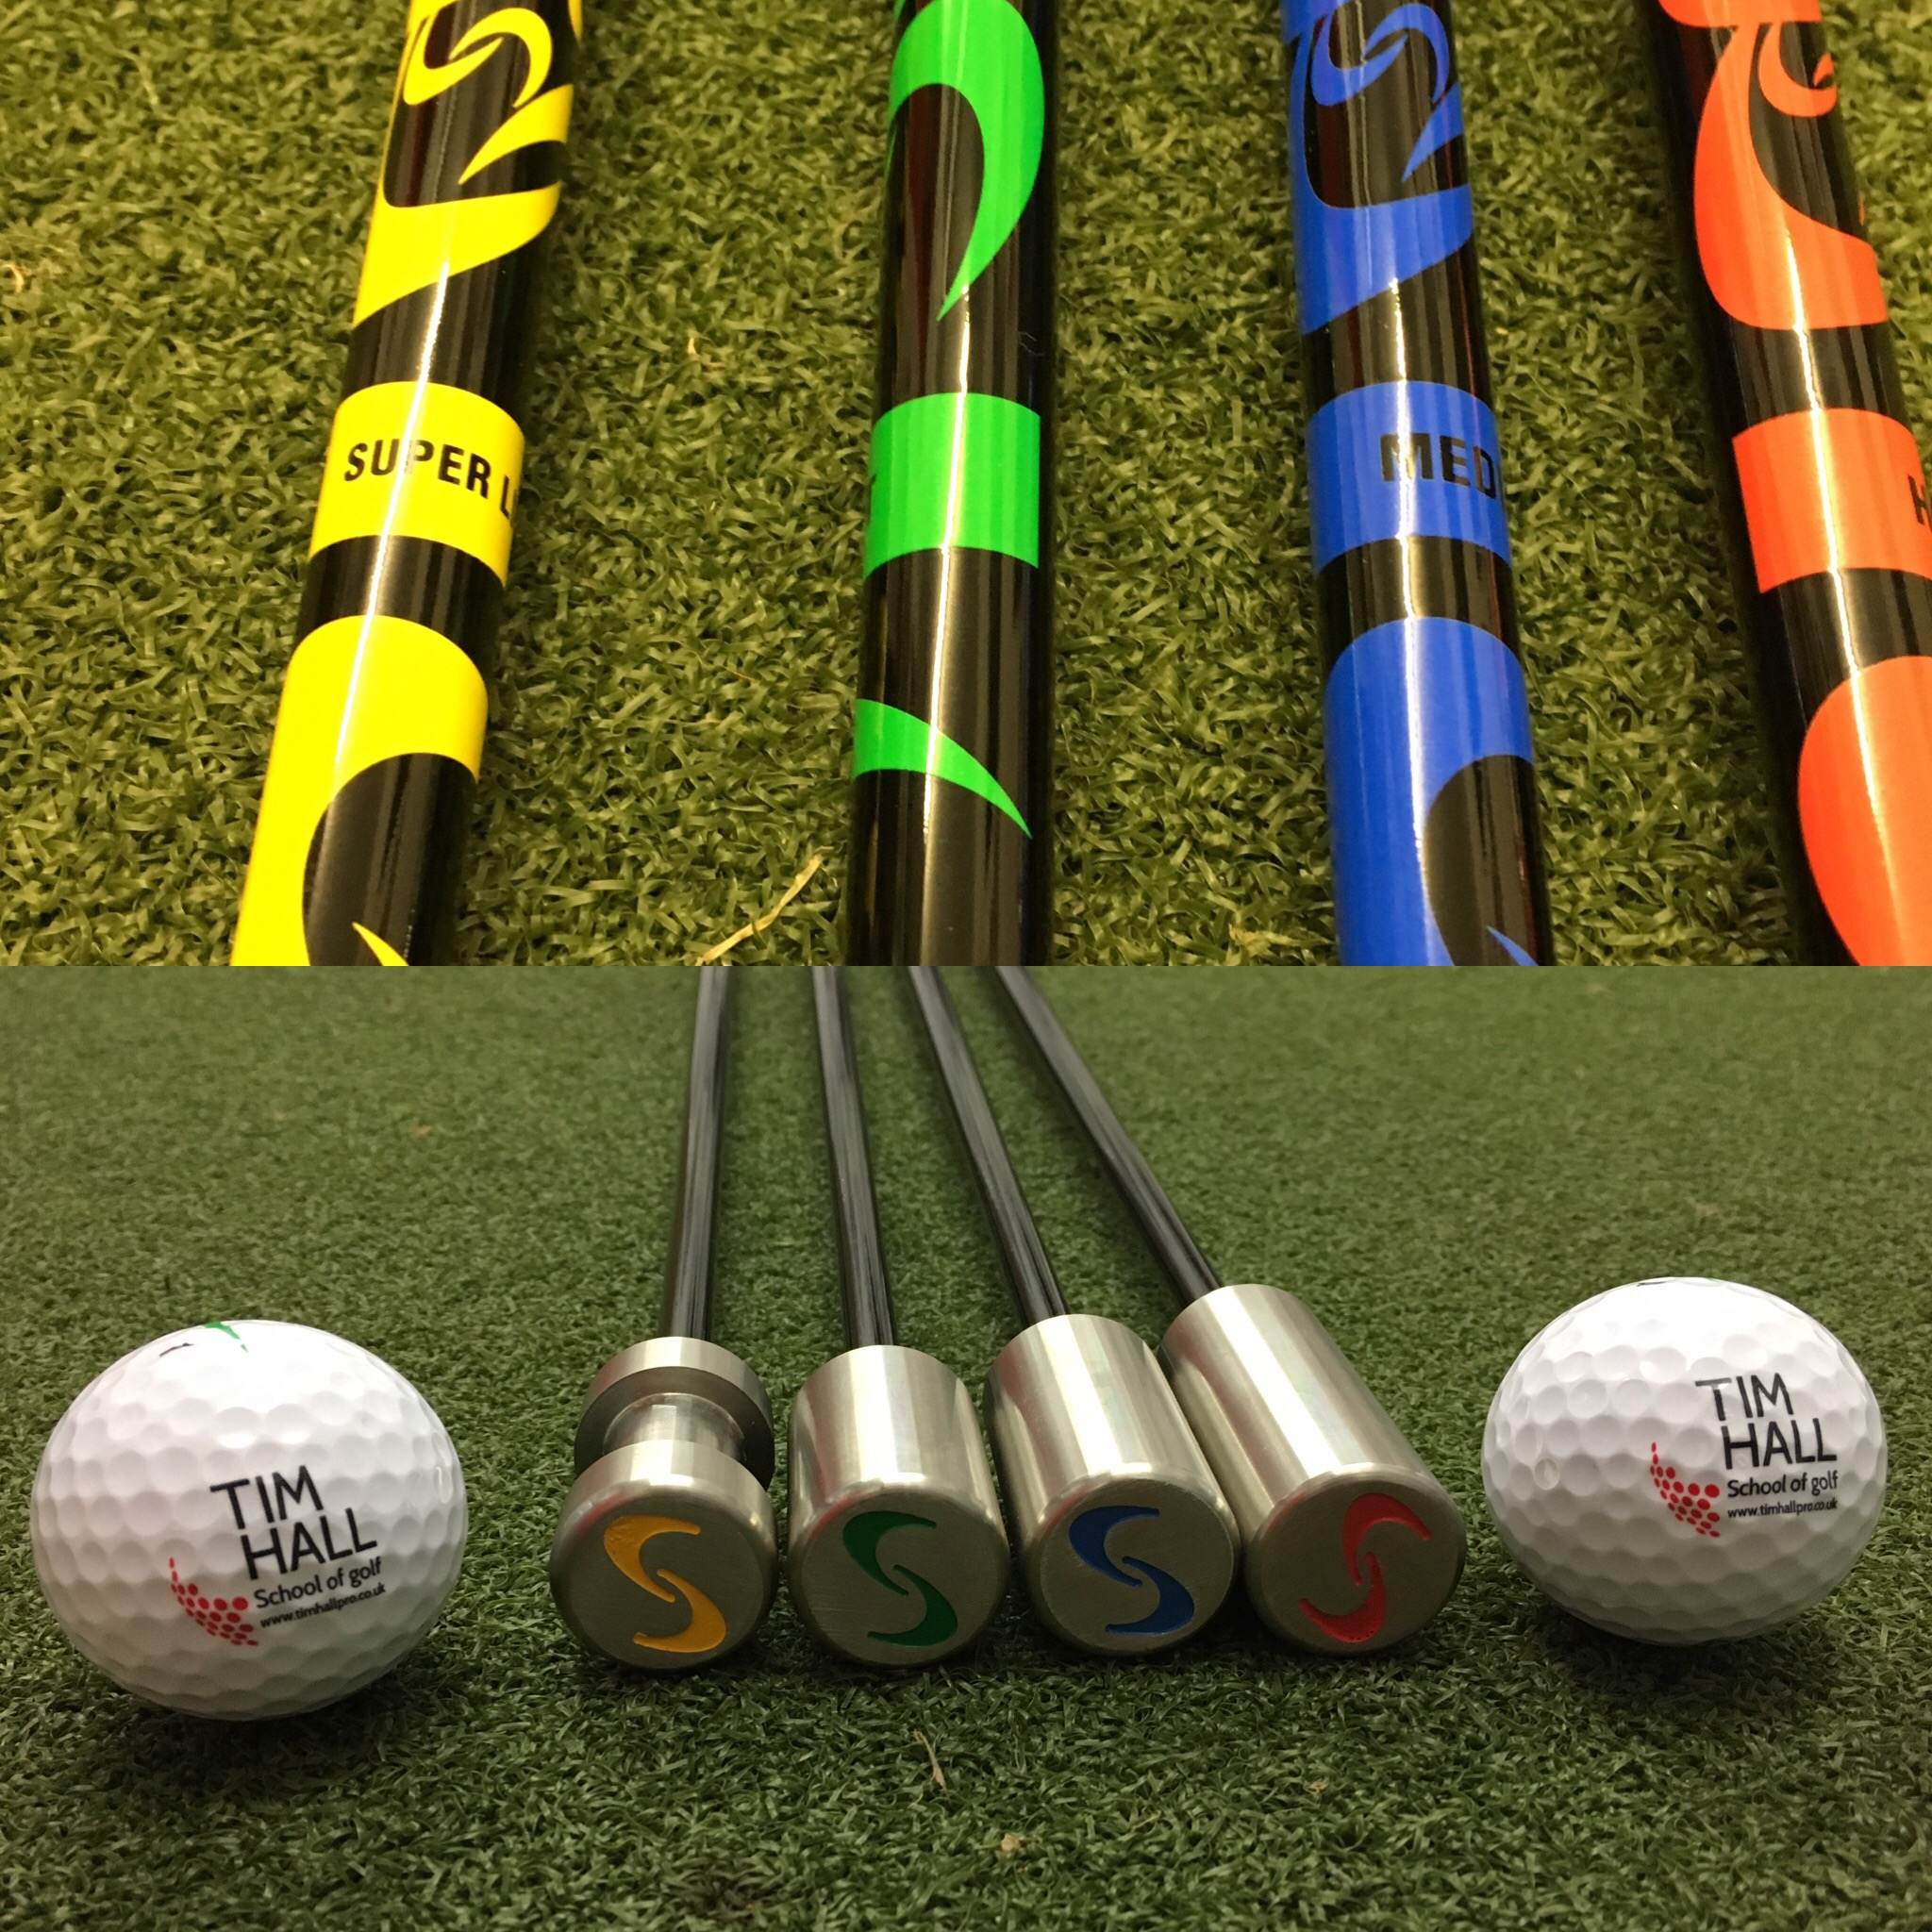 The THSG Invest in the new Superspeed Golf System